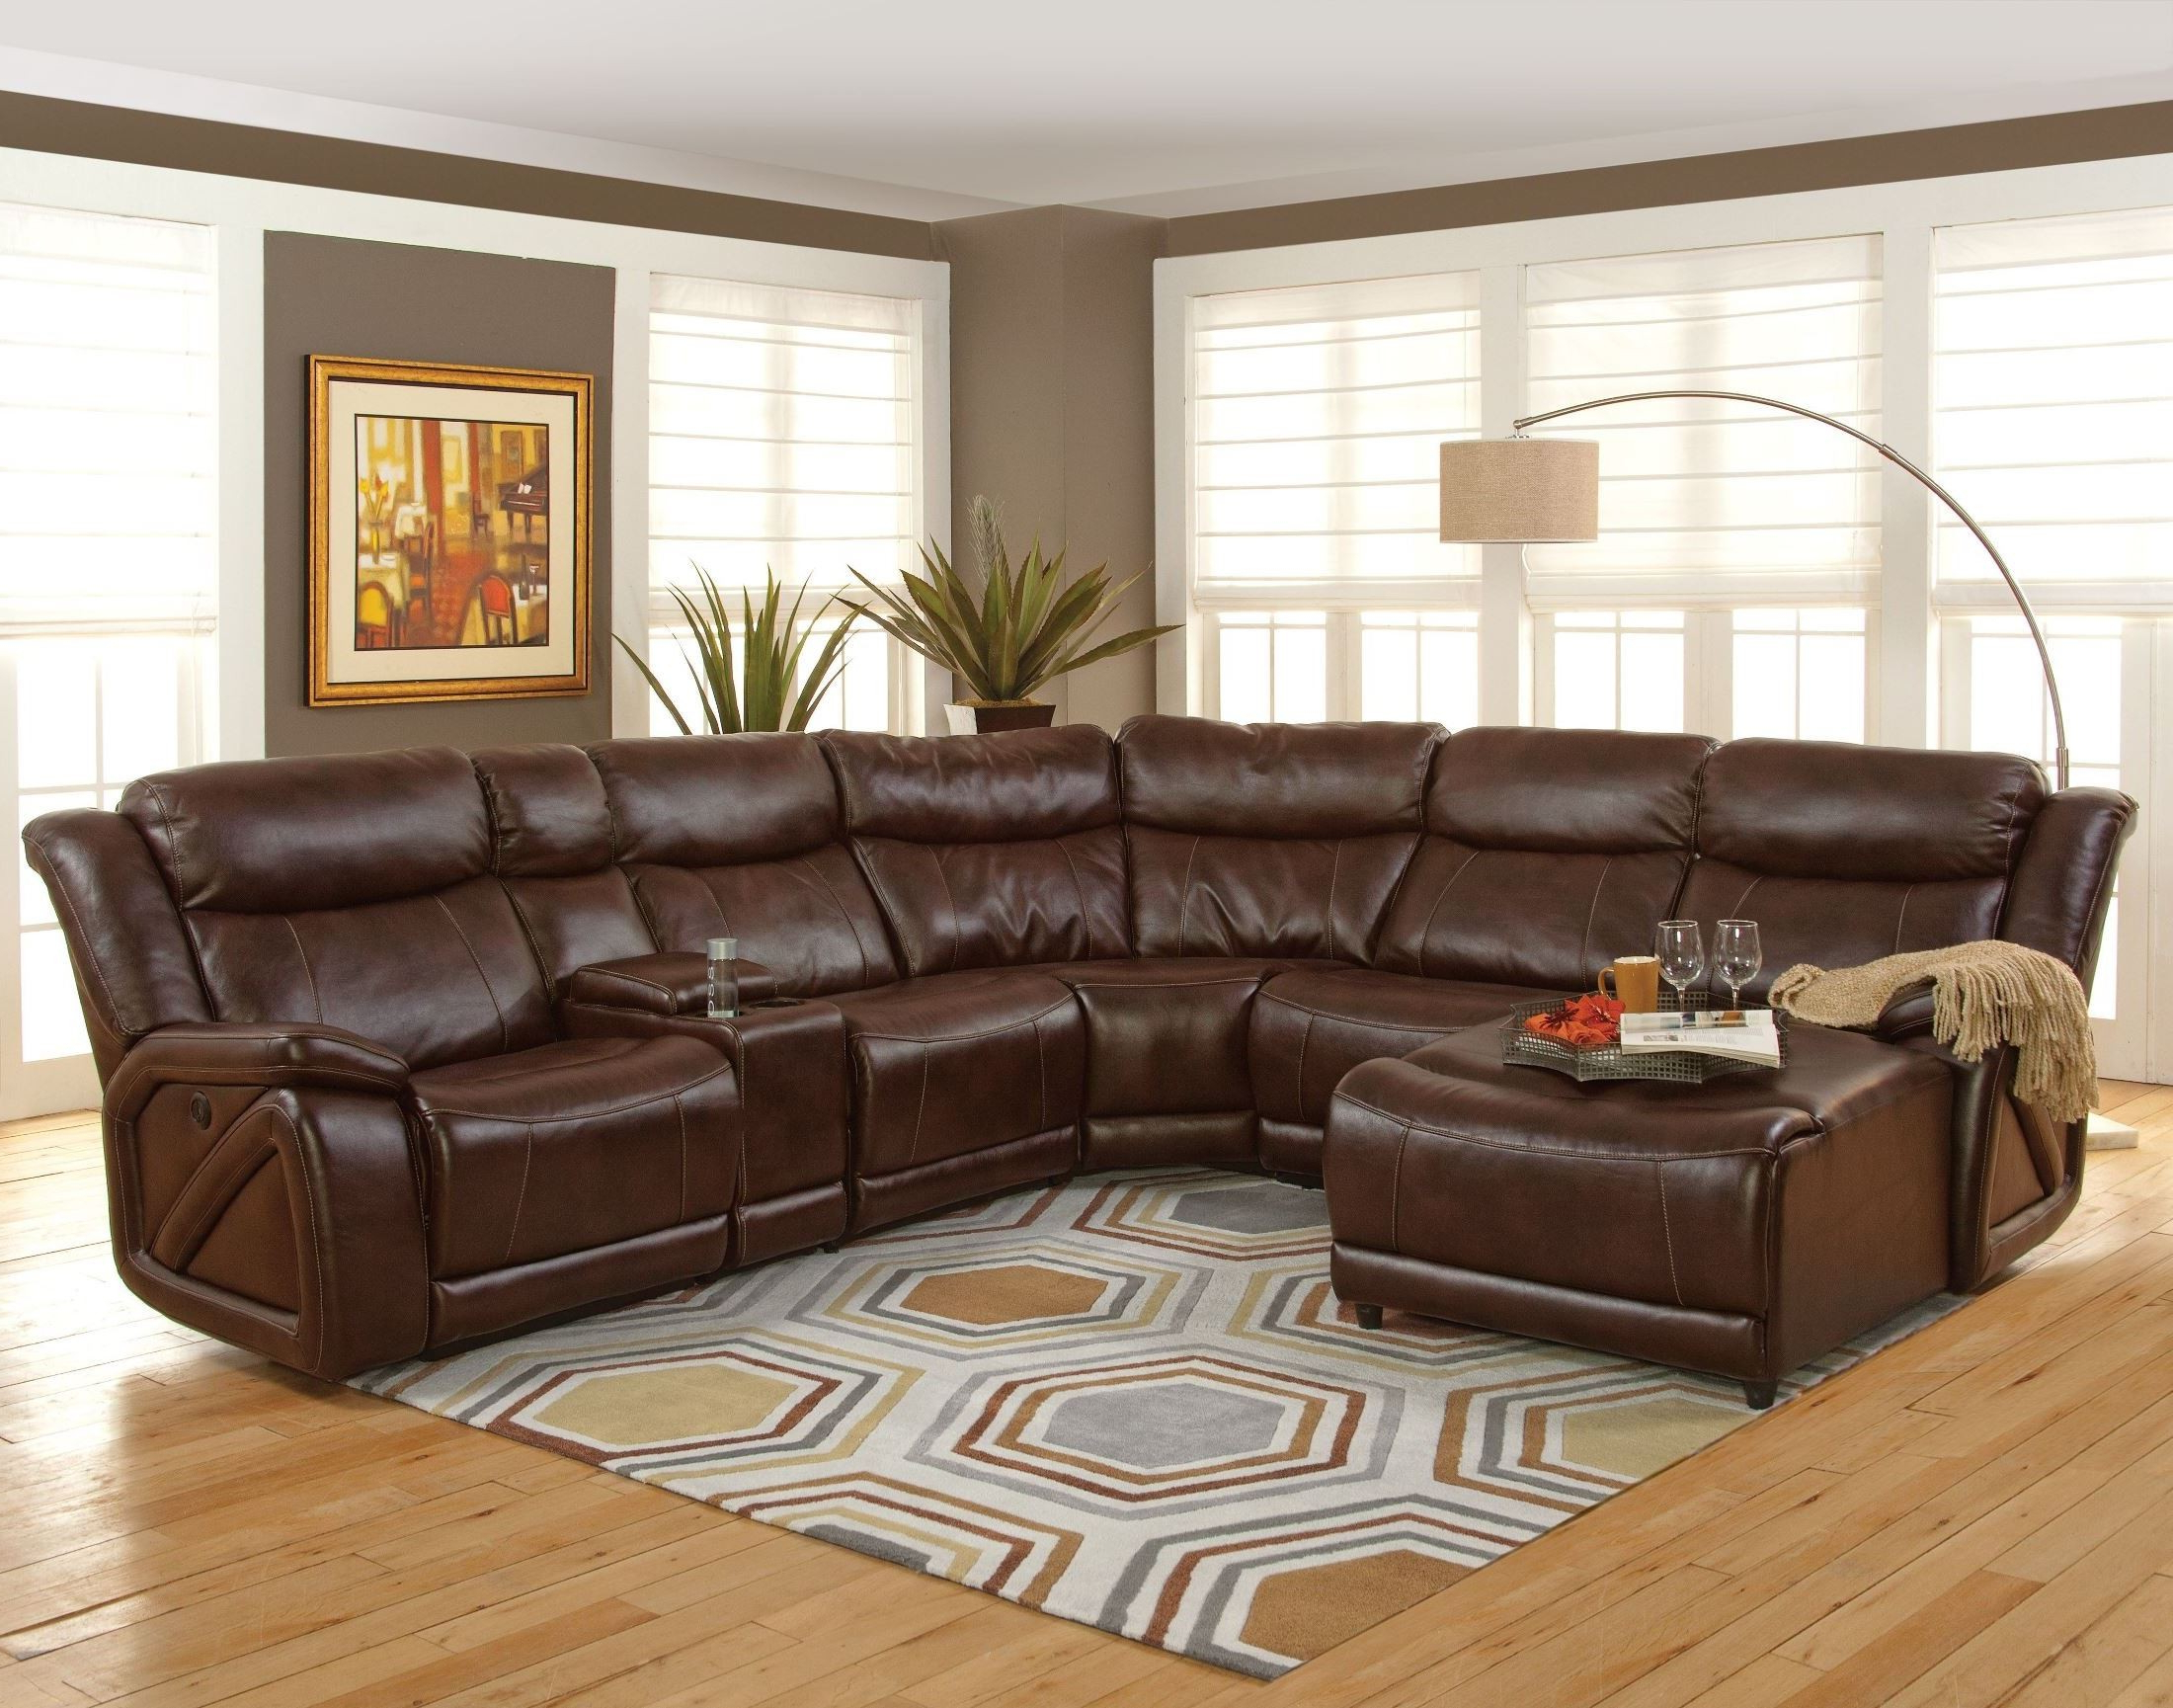 Turdur 3 Piece Sectionals With Raf Loveseat Inside Fashionable Park Place Premier Brown Laf Sectional From New Classics (20 225 17l (View 6 of 20)